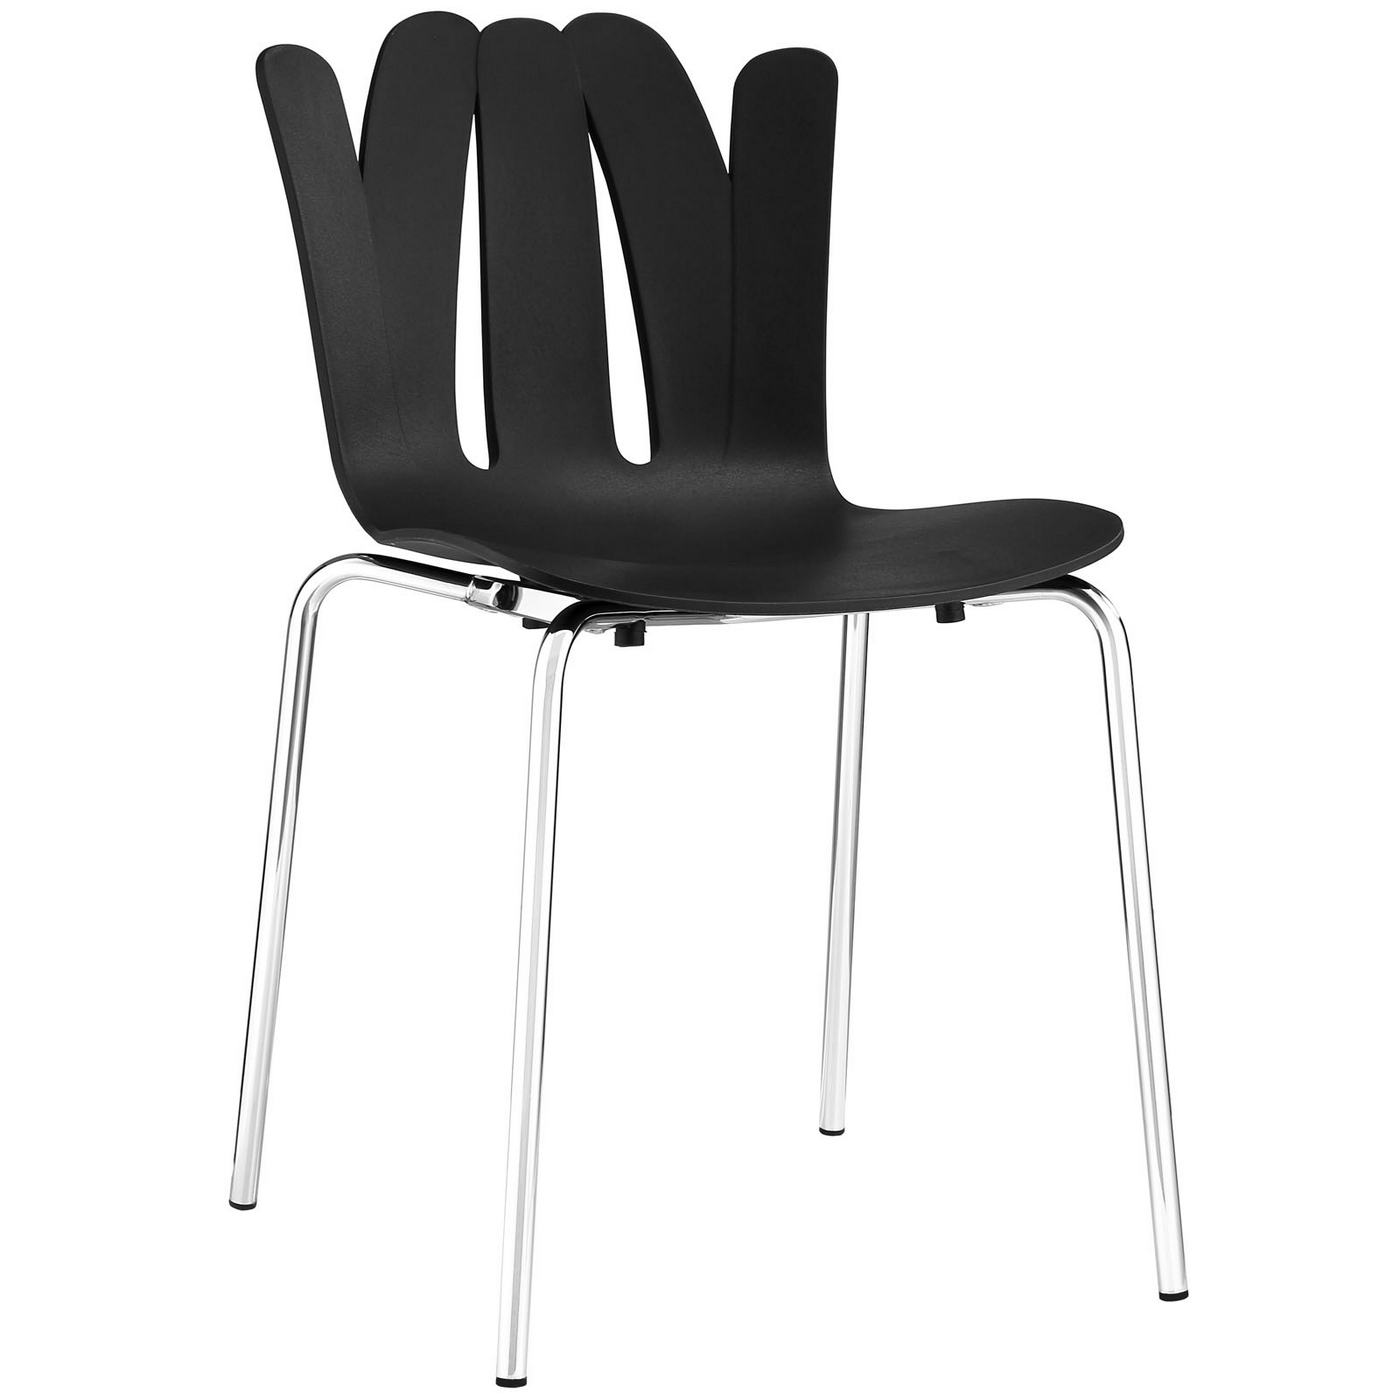 flare modern stackable stylish plastic dining side chair with steel frame black. Black Bedroom Furniture Sets. Home Design Ideas